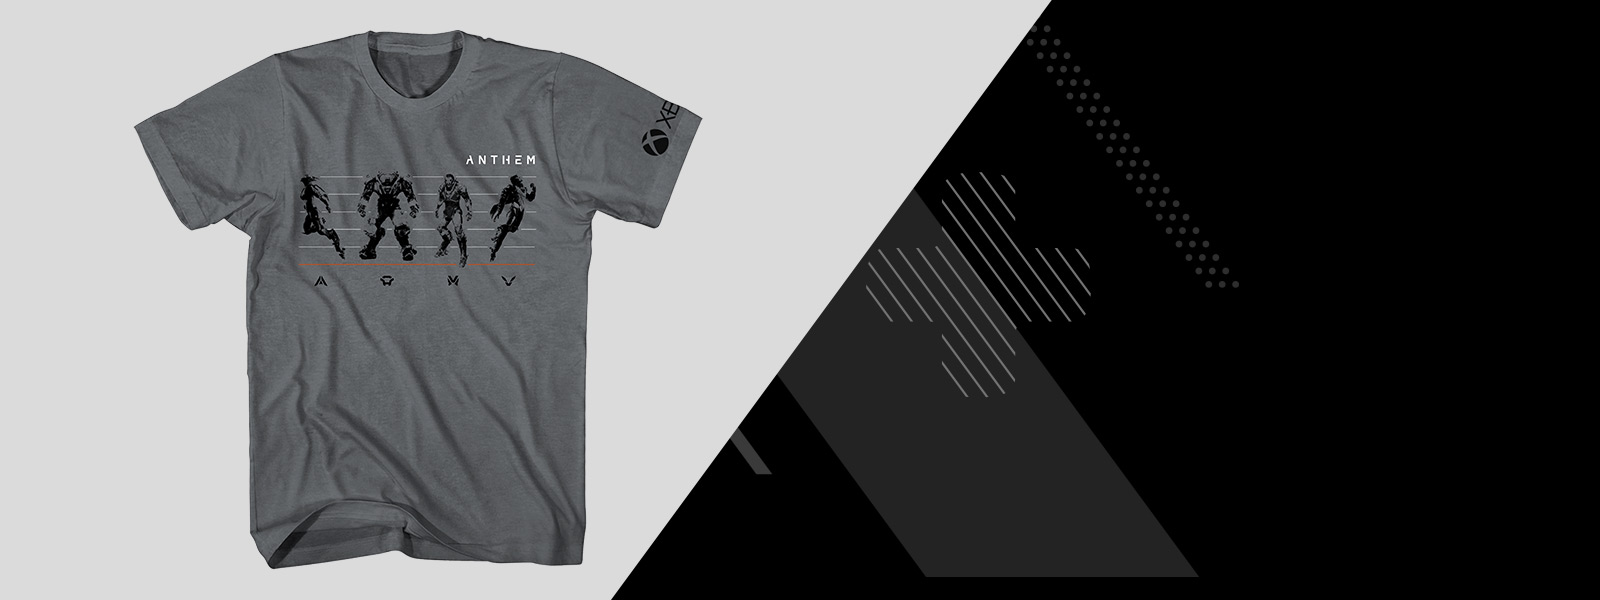 Anthem t-shirt with all 4 javelins on the front, beside a stylized xbox controller background